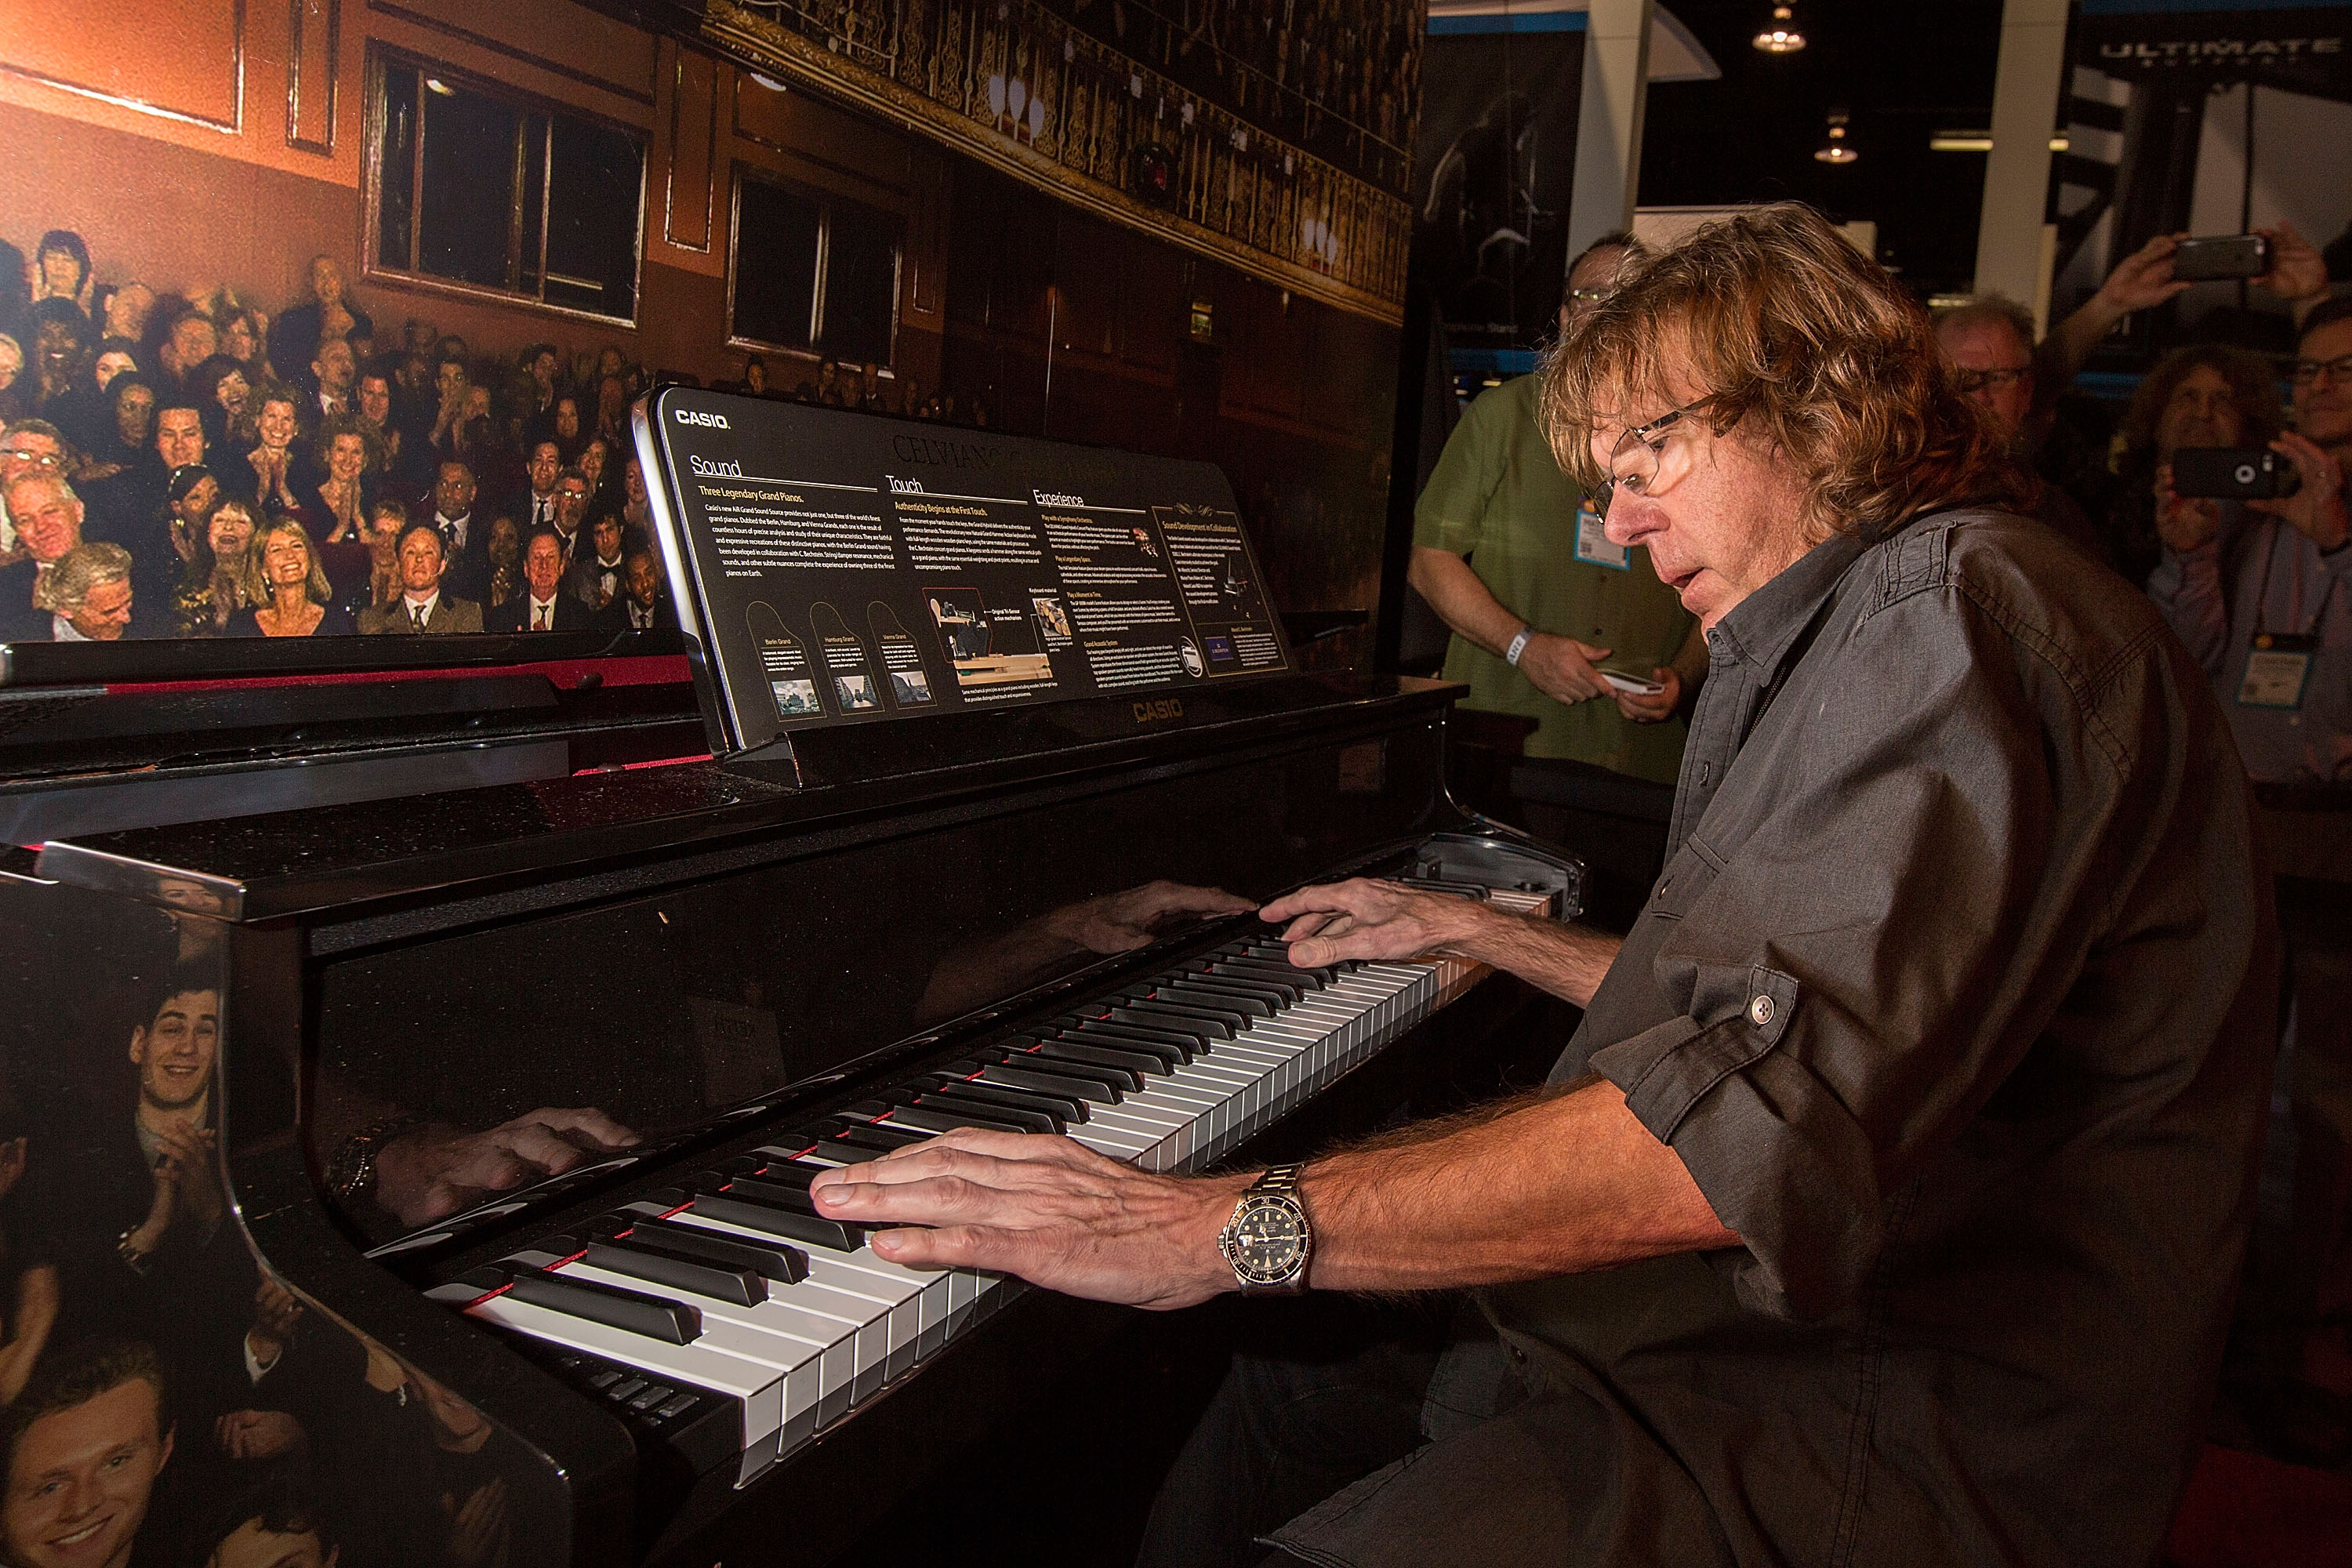 Keyboardist Keith Emerson of Emerson, Lake & Palmer performs at the NAMM Show on Jan. 21, 2016 in Anaheim, California.